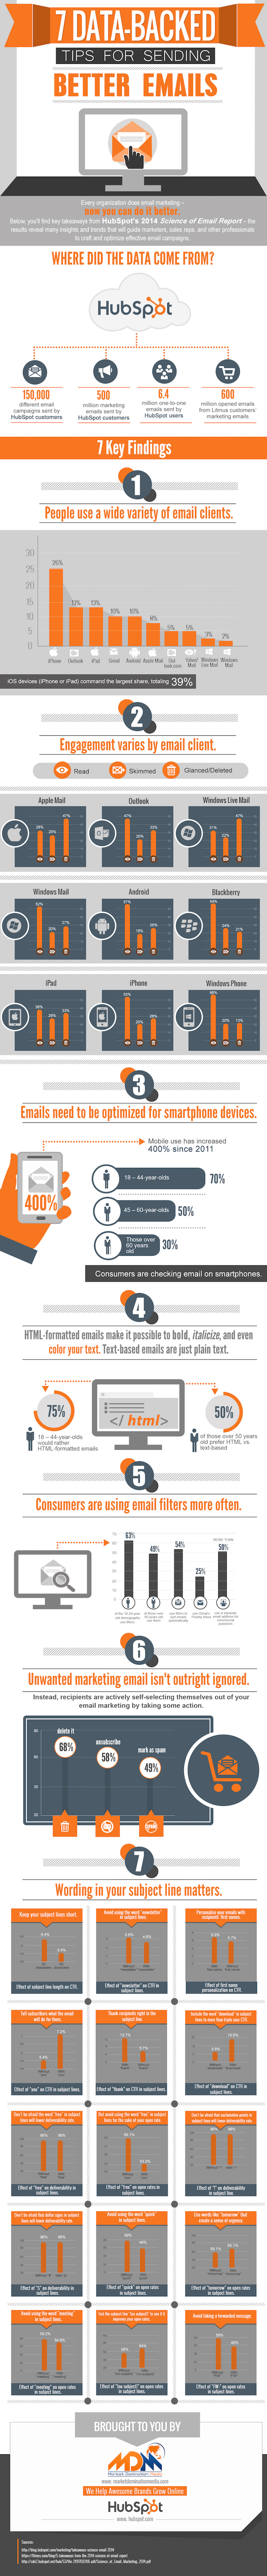 sending-better-emails-infographic